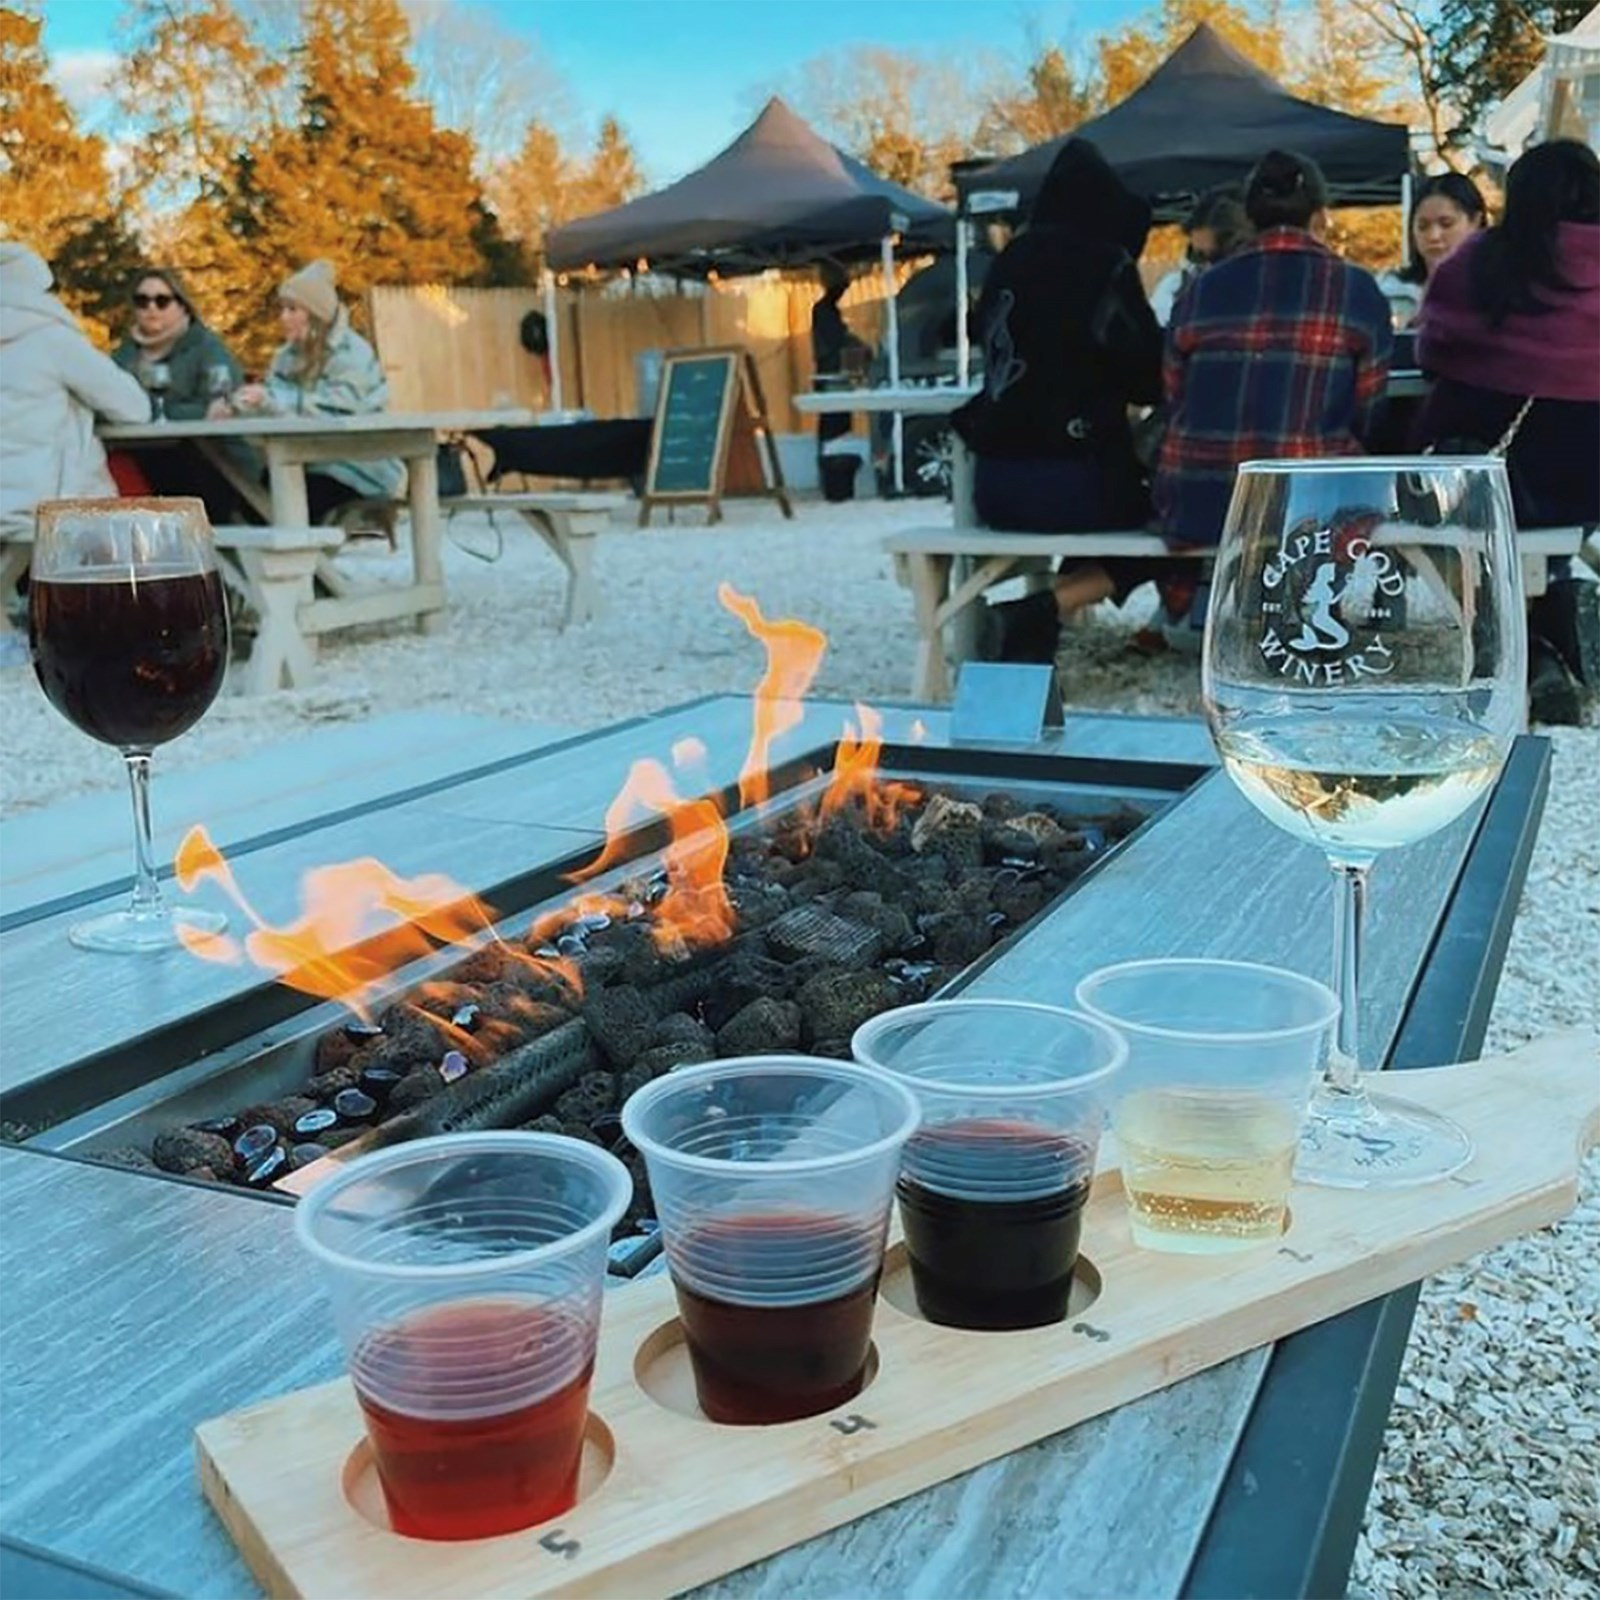 Sit back, relax, and enjoy a glass of locally crafted wine.